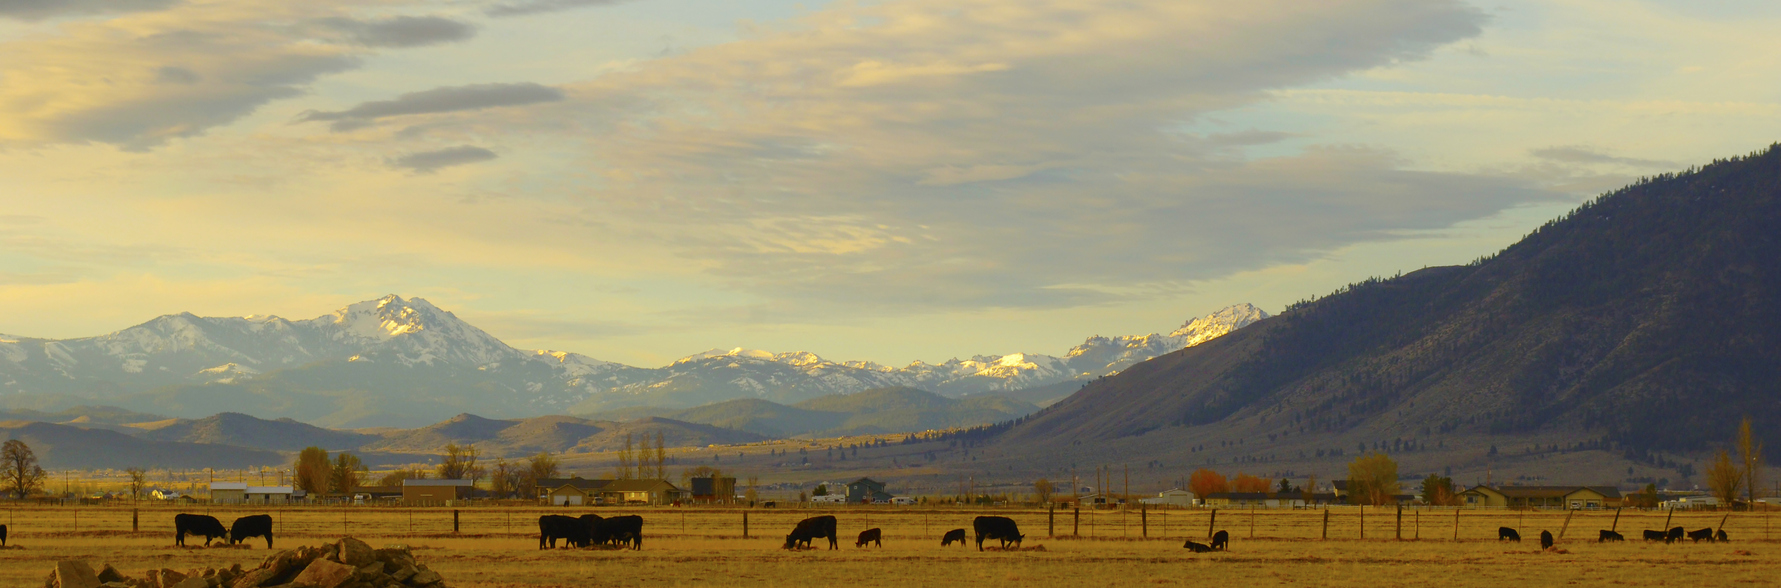 Late afternoon at Carson Valley Nevada